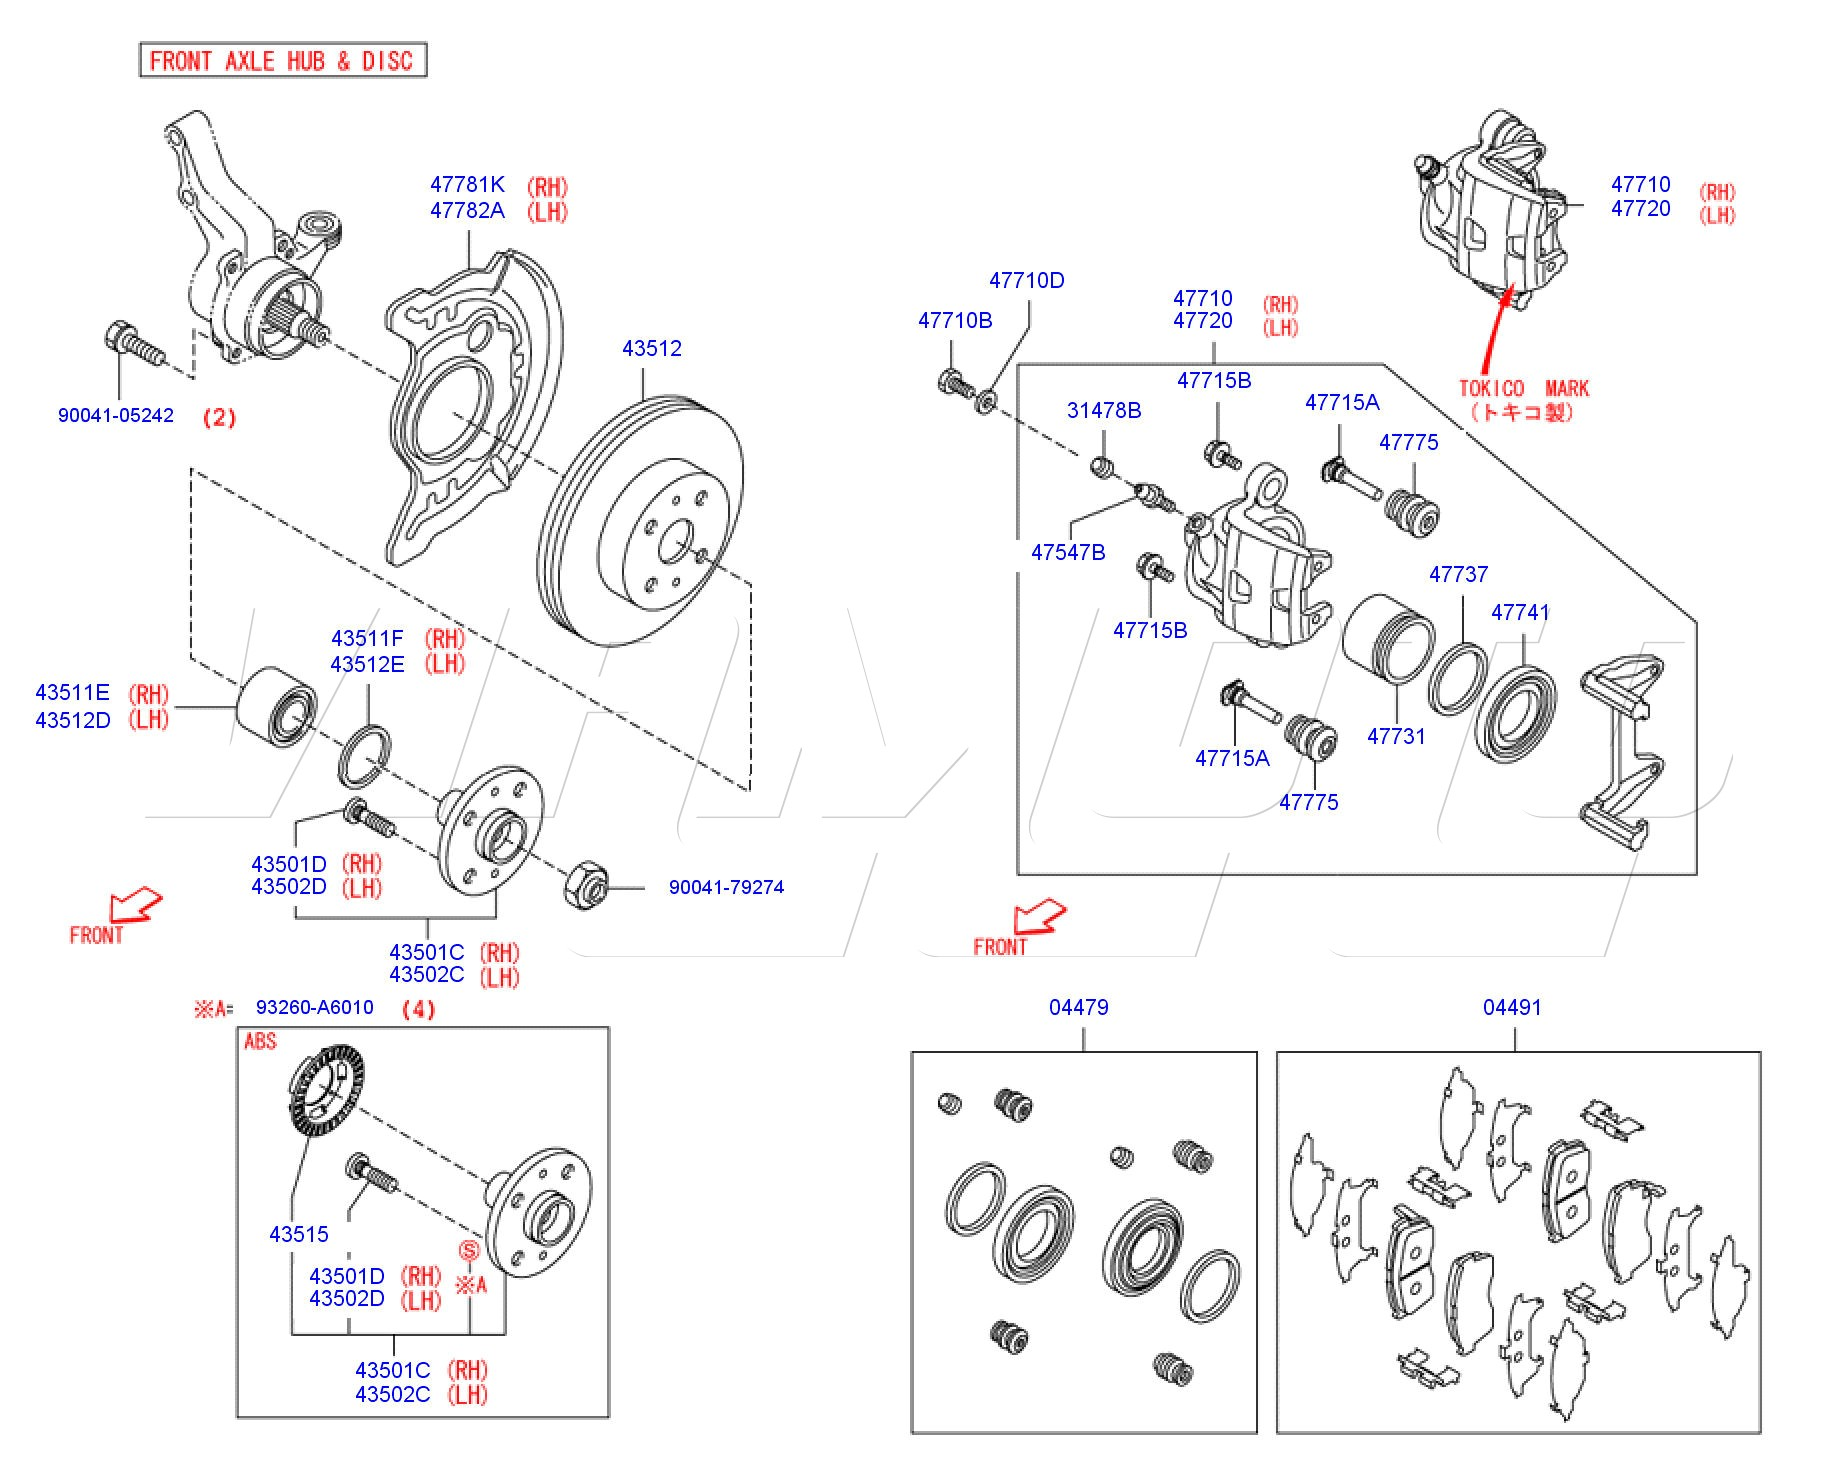 Viamoto Car Parts Daihatsu Copen 13i Roadster L88 K3 Ve 16v Dohc Disc Brake Caliper Components And Diagram Front Brakes Exploded Here Price 995